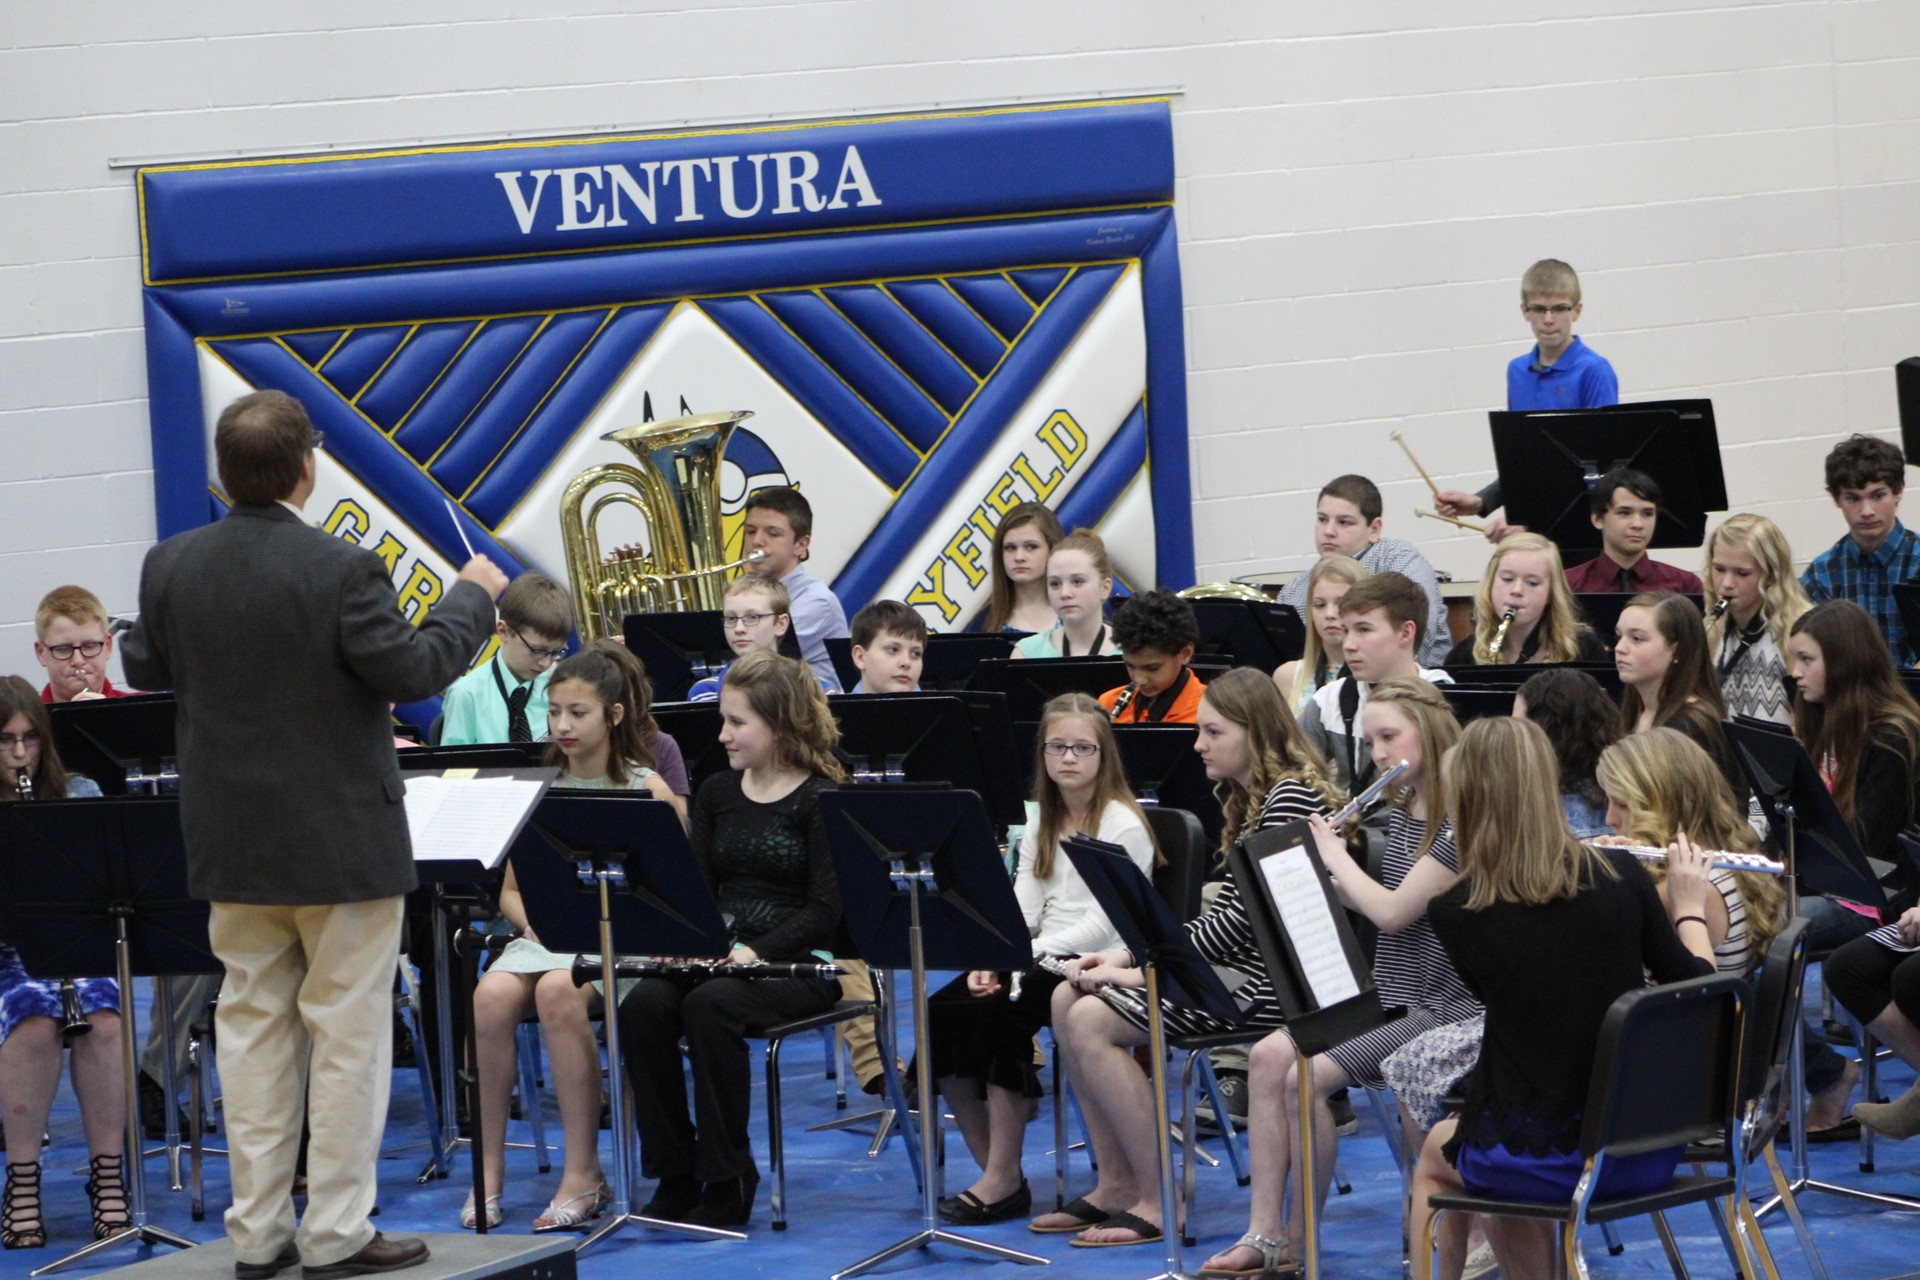 Students playing at band concert